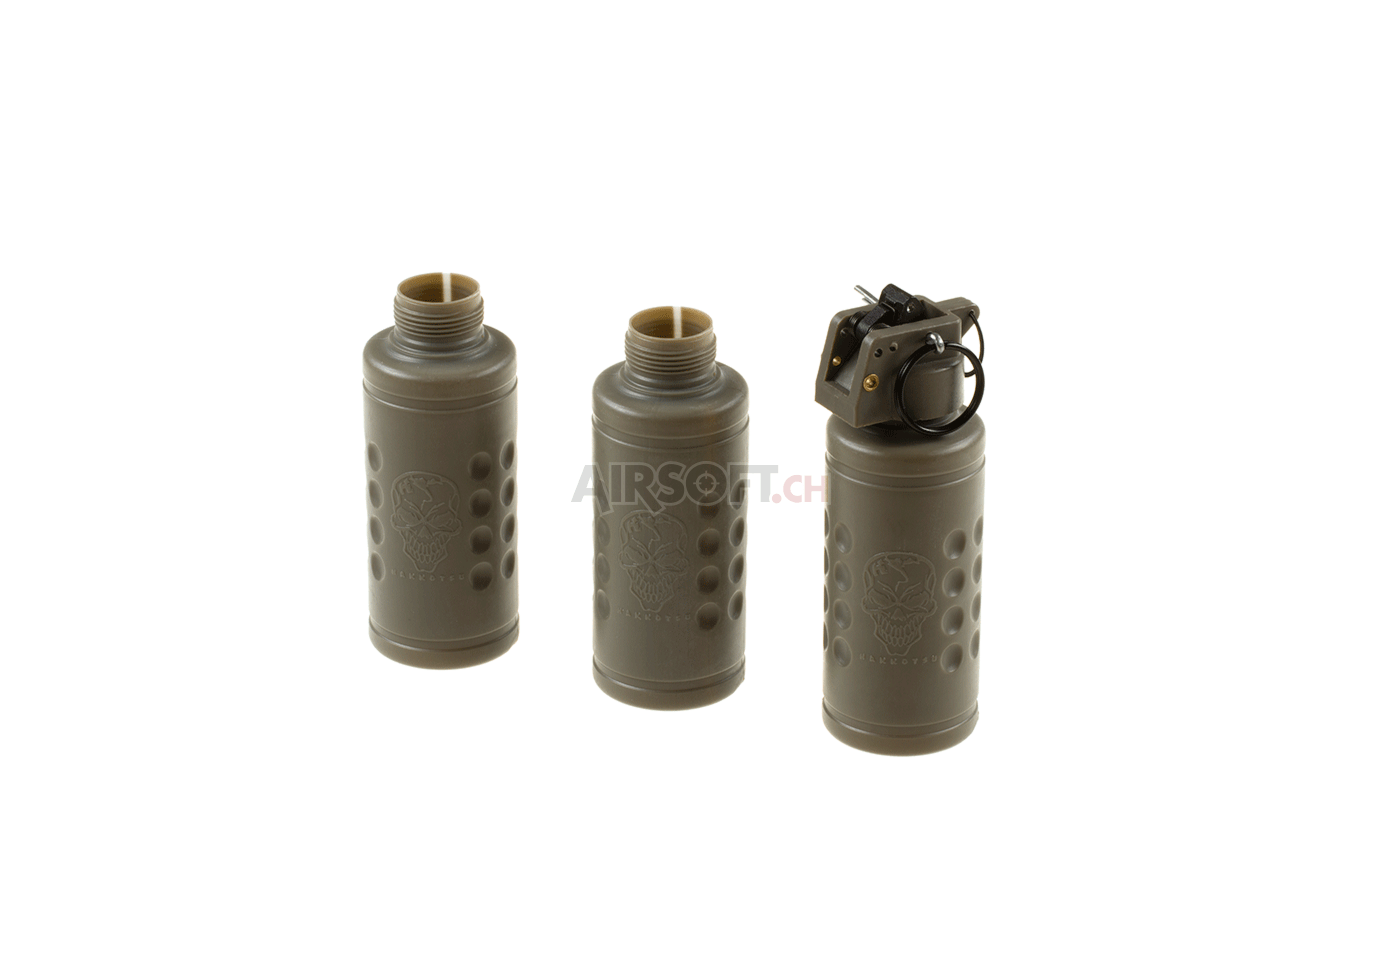 thunder b airsoft grenade instructions